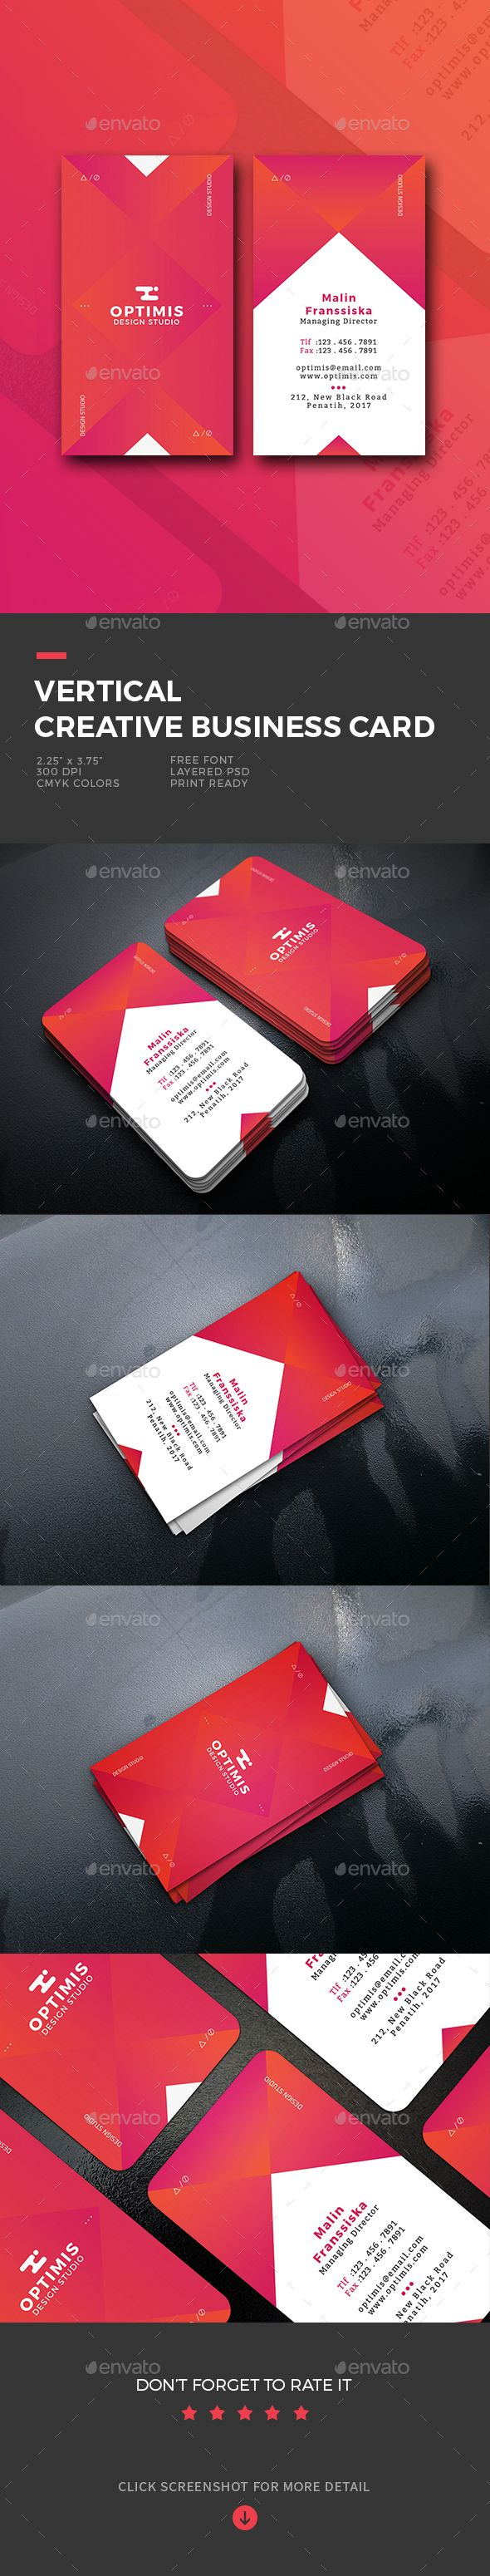 Vertical Creative Business Card - #Business #Cards Print Templates Download here: https://graphicriver.net/item/vertical-creative-business-card/19930811?ref=alena994